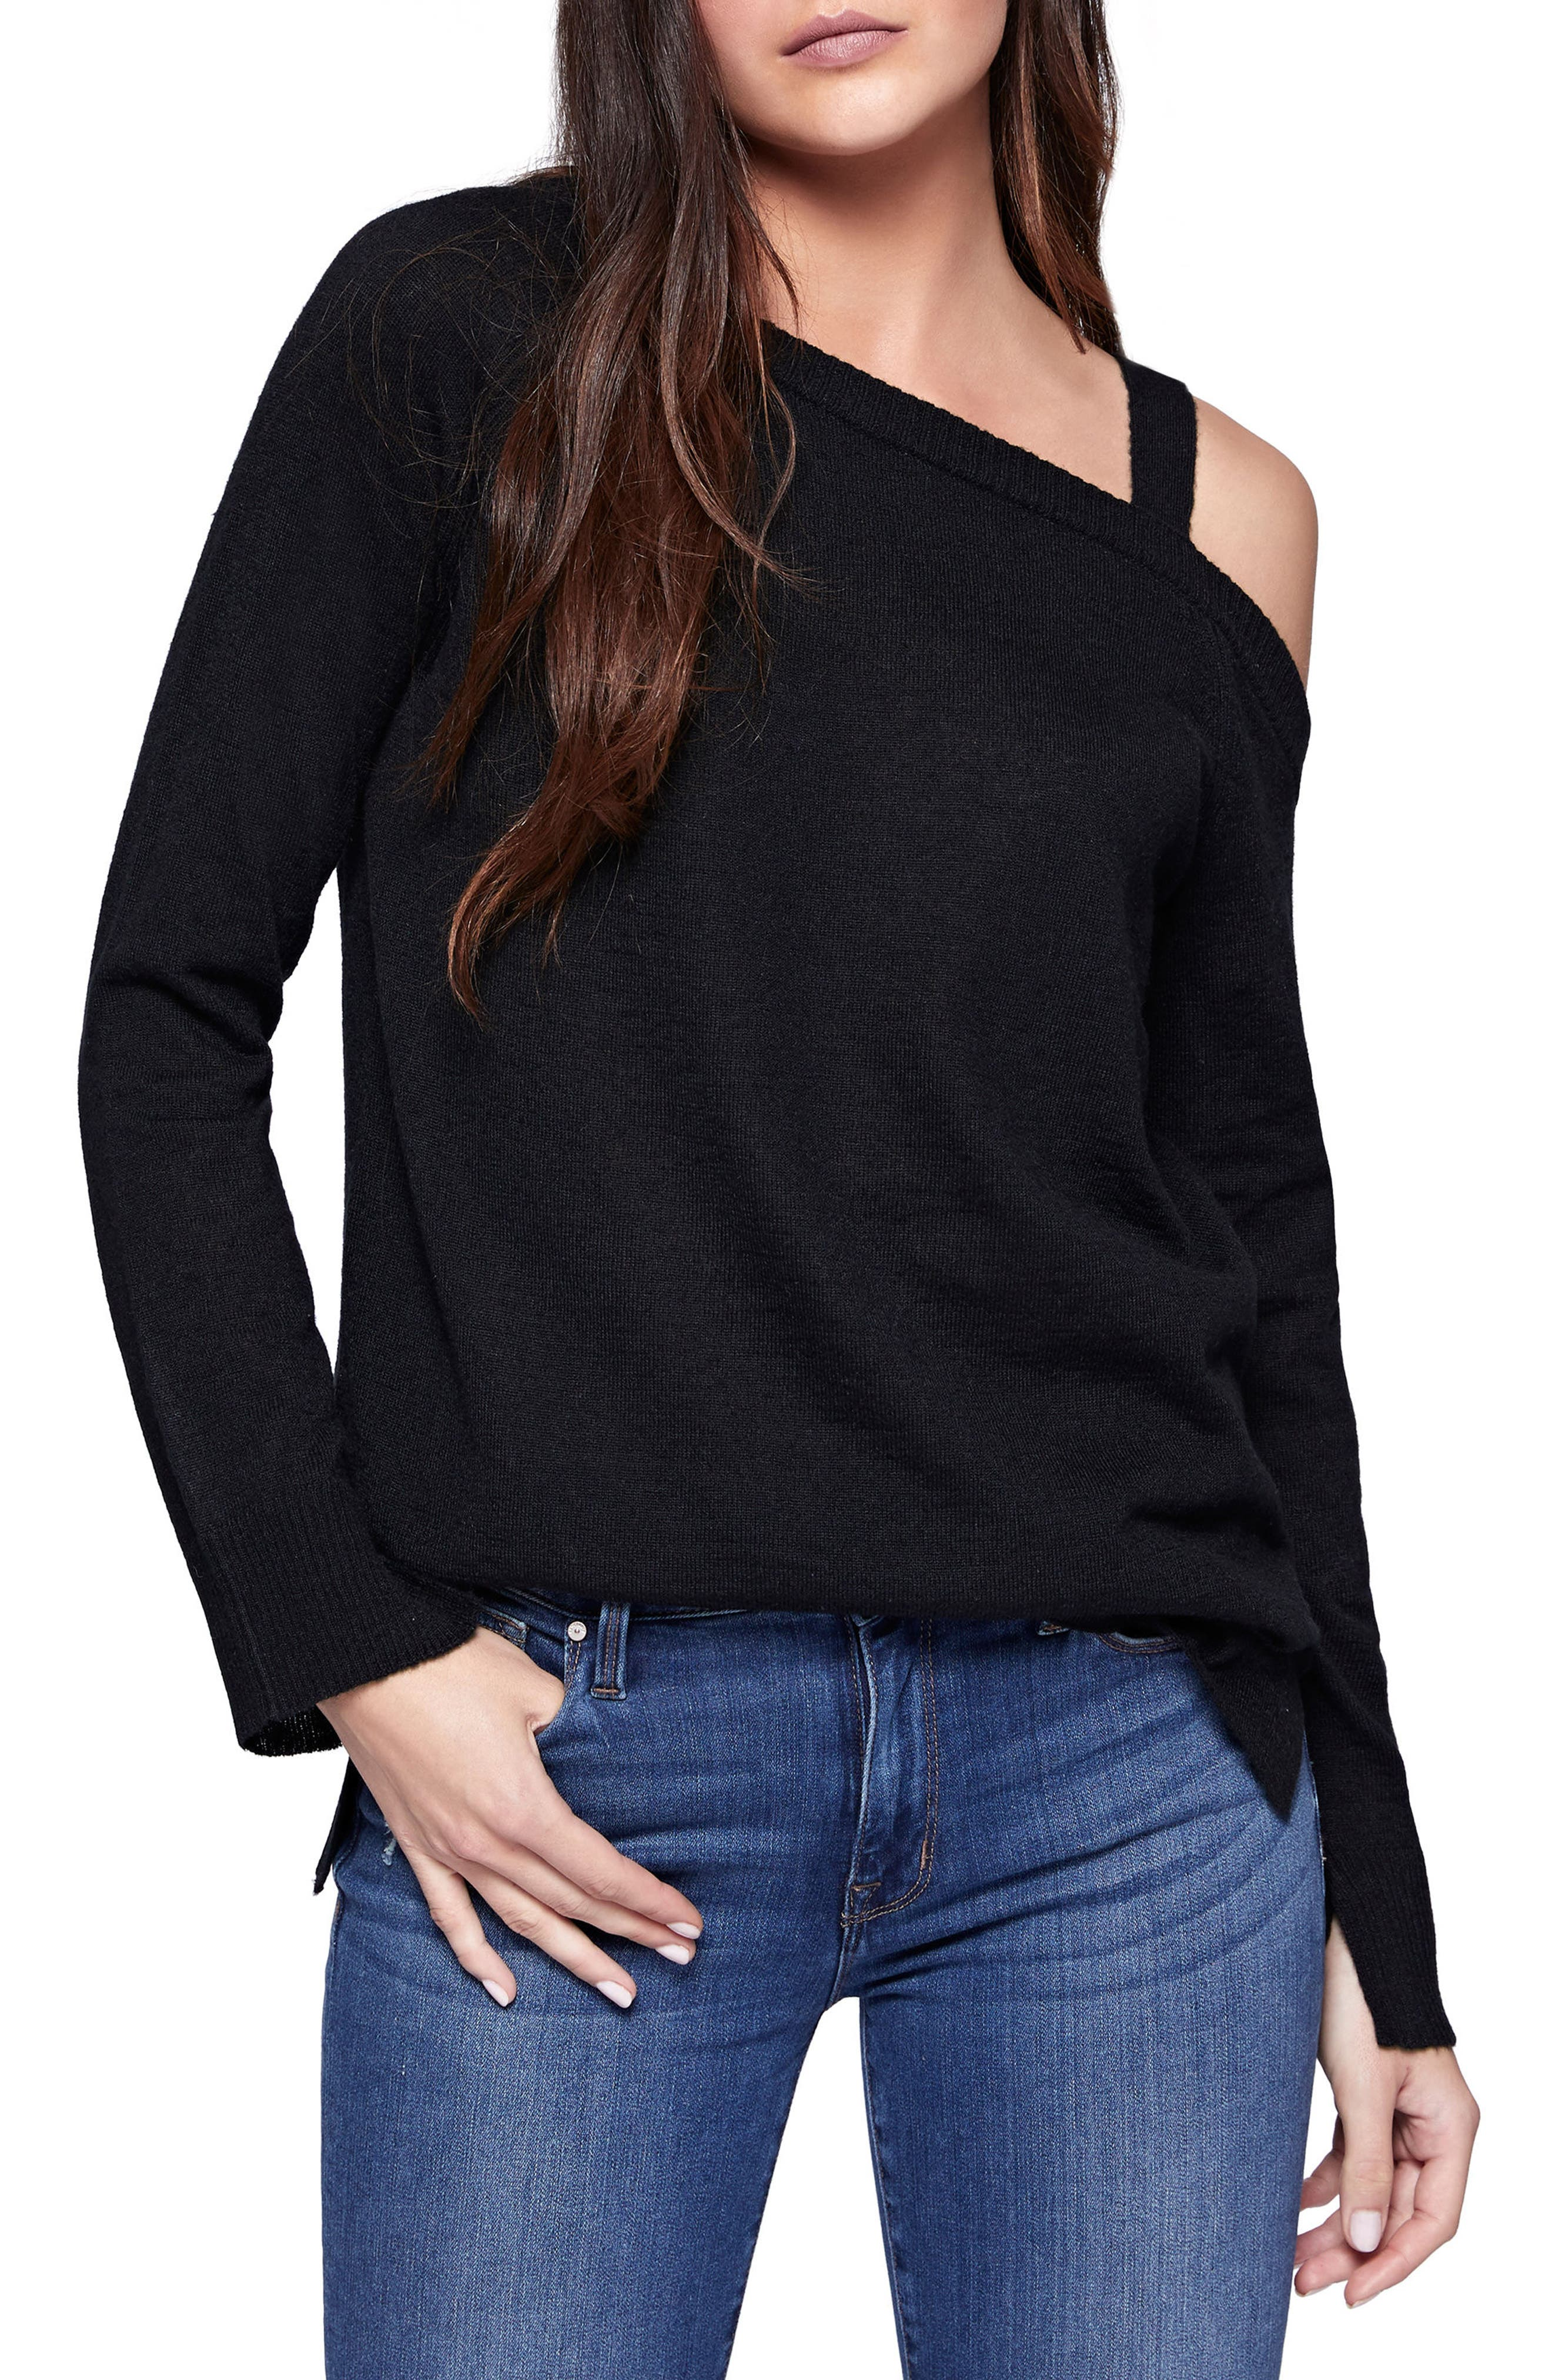 Camilla One-Shoulder Sweater,                             Main thumbnail 1, color,                             001